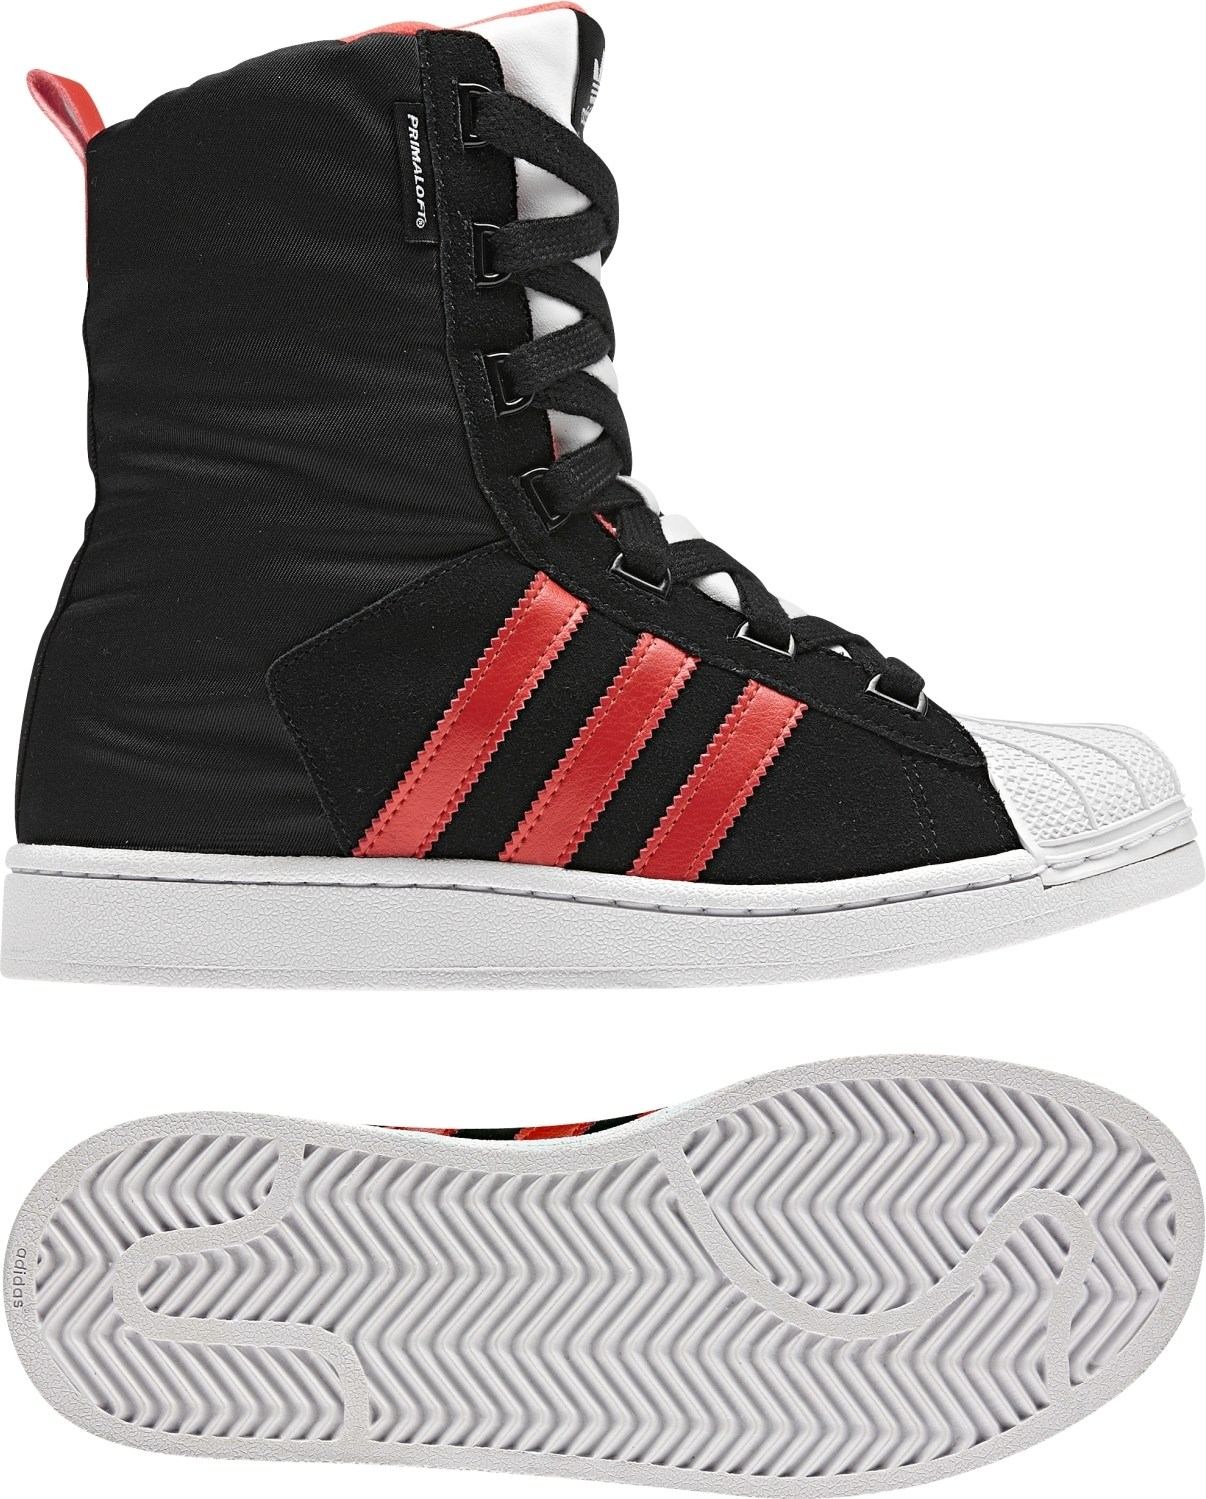 05805ee04b Adidas Superstar Boot